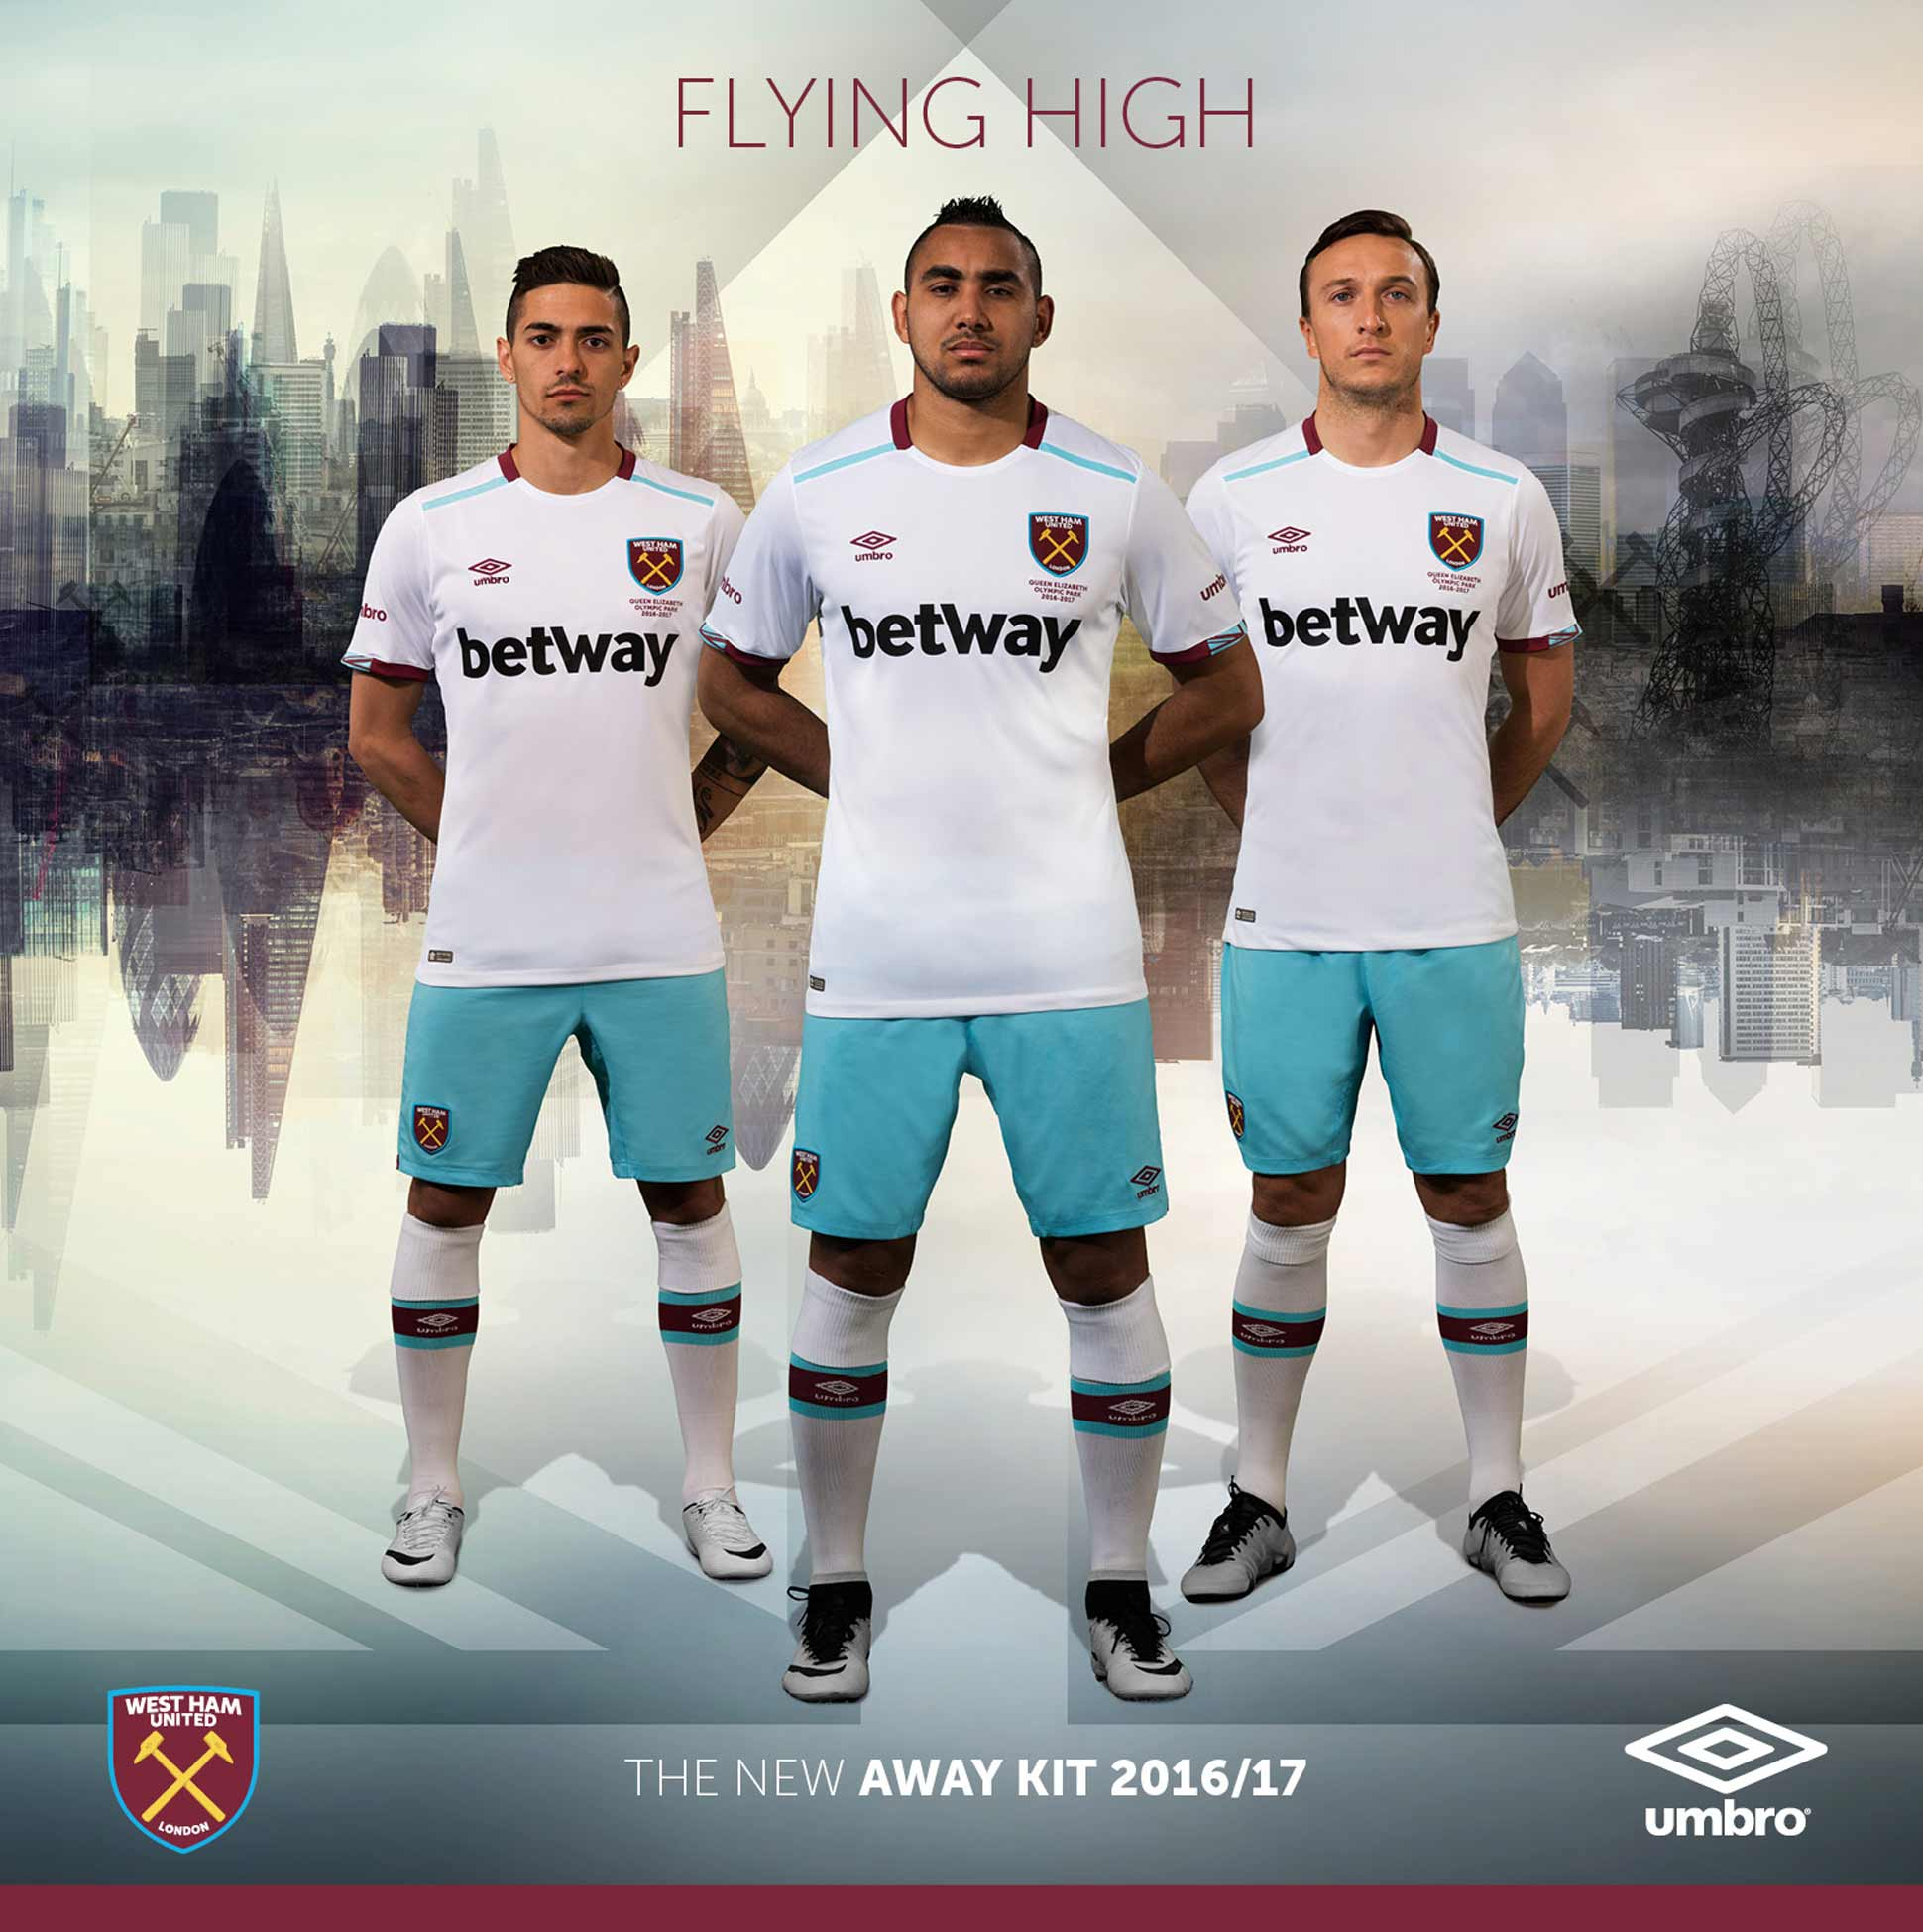 competitive price ade3c 3c7f3 West Ham 2016/17 Away by Umbro - SoccerBible